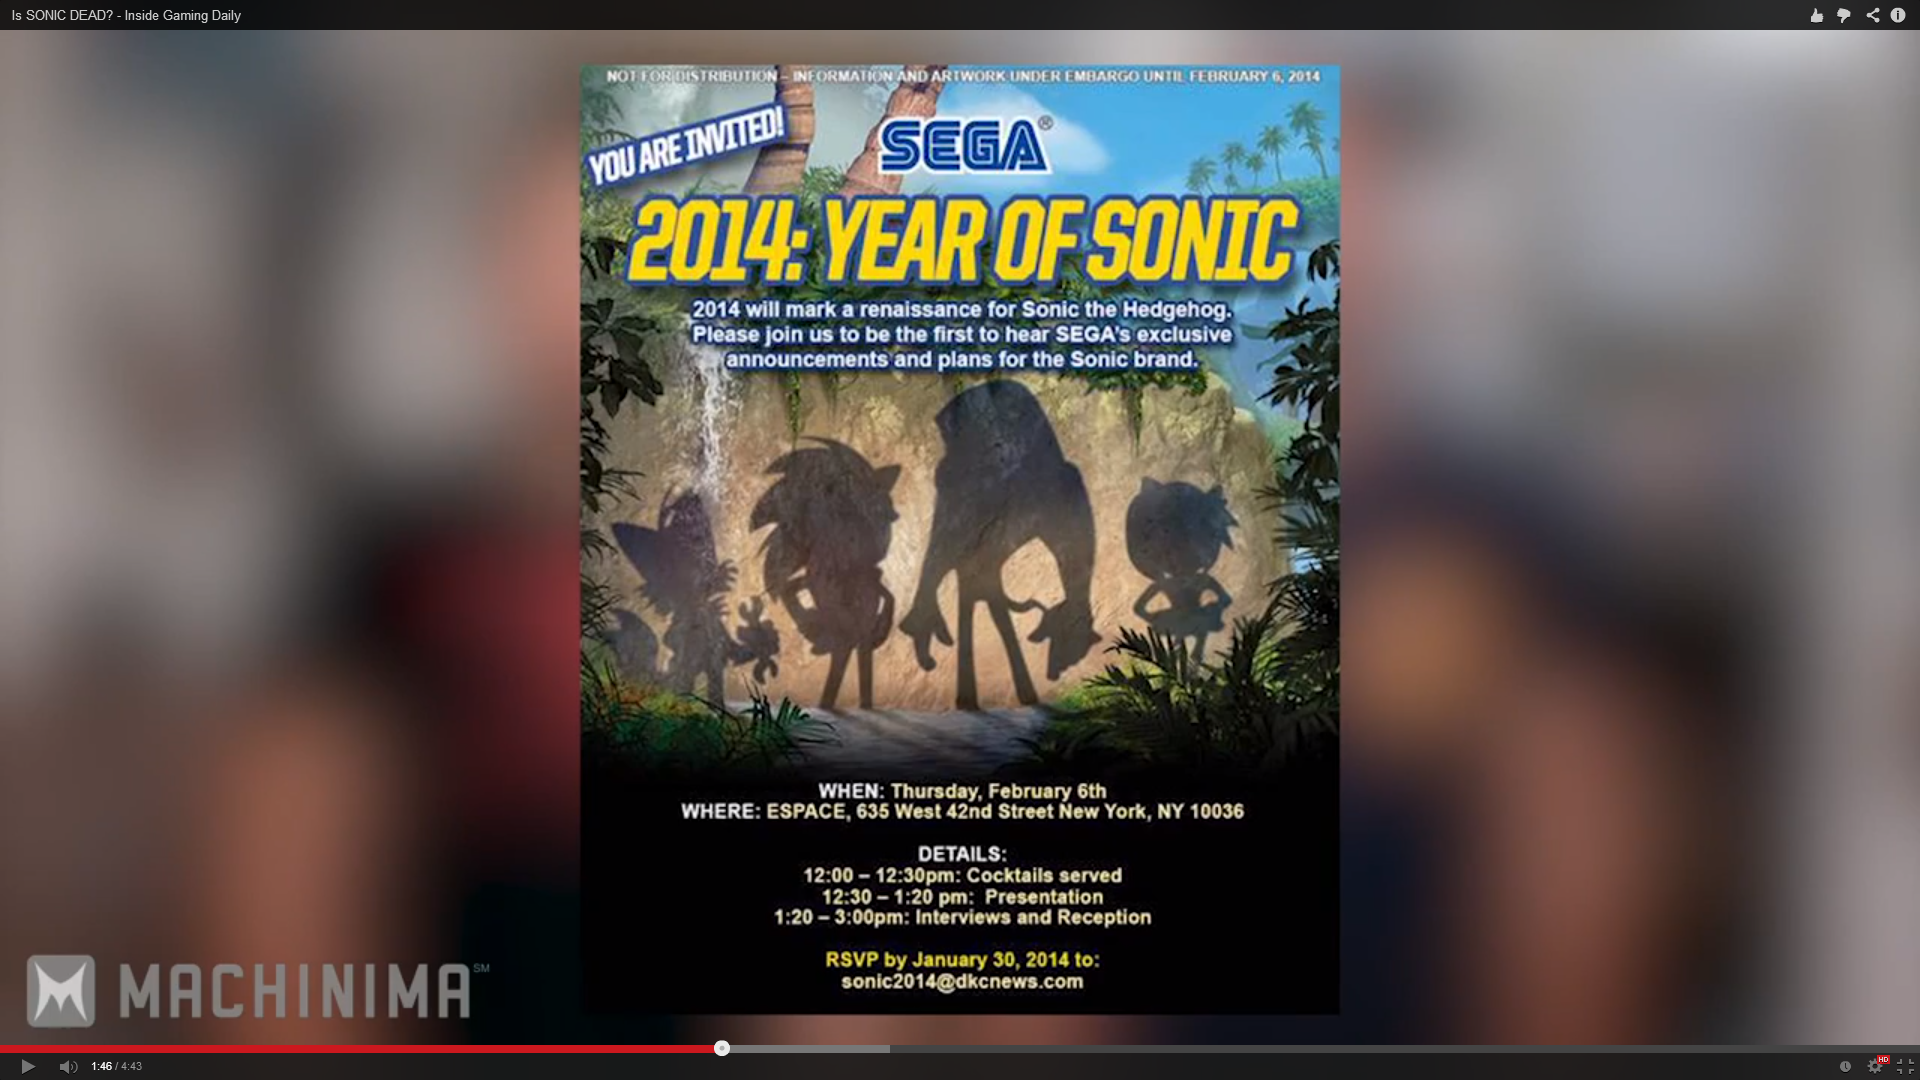 Sega: 2014 is the Year of Sonic